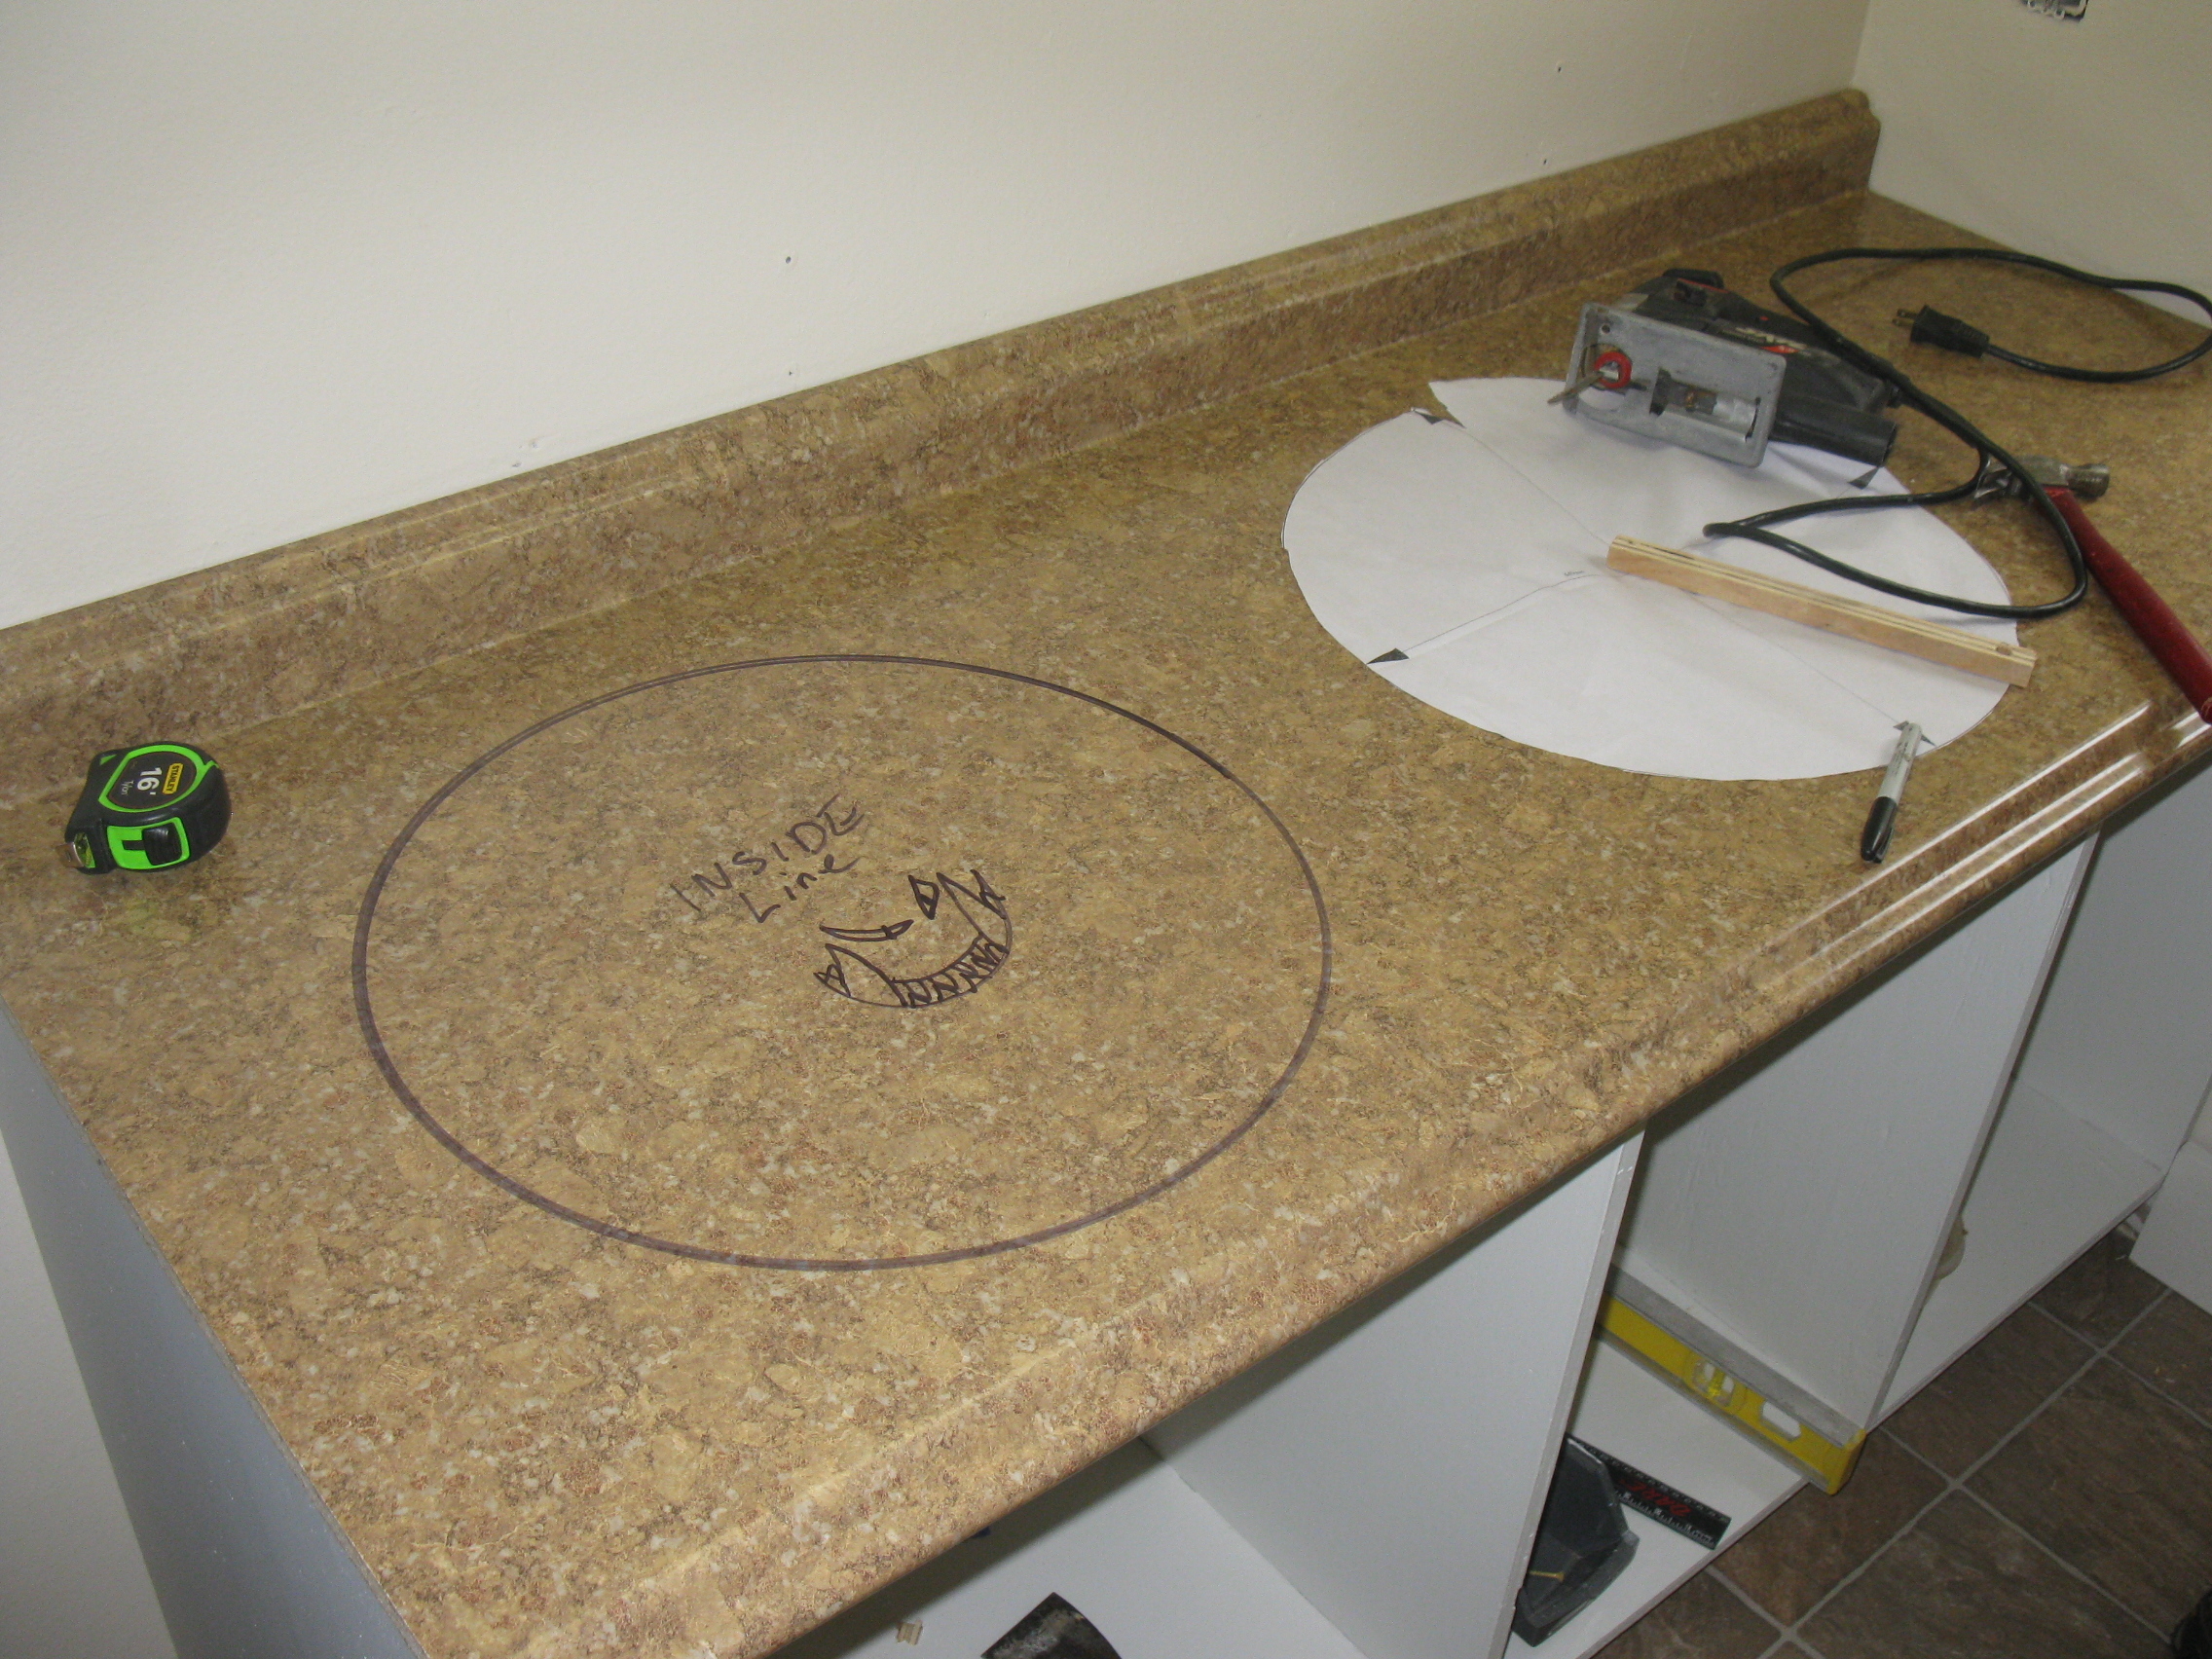 Counter Top On Cut Out For Sink